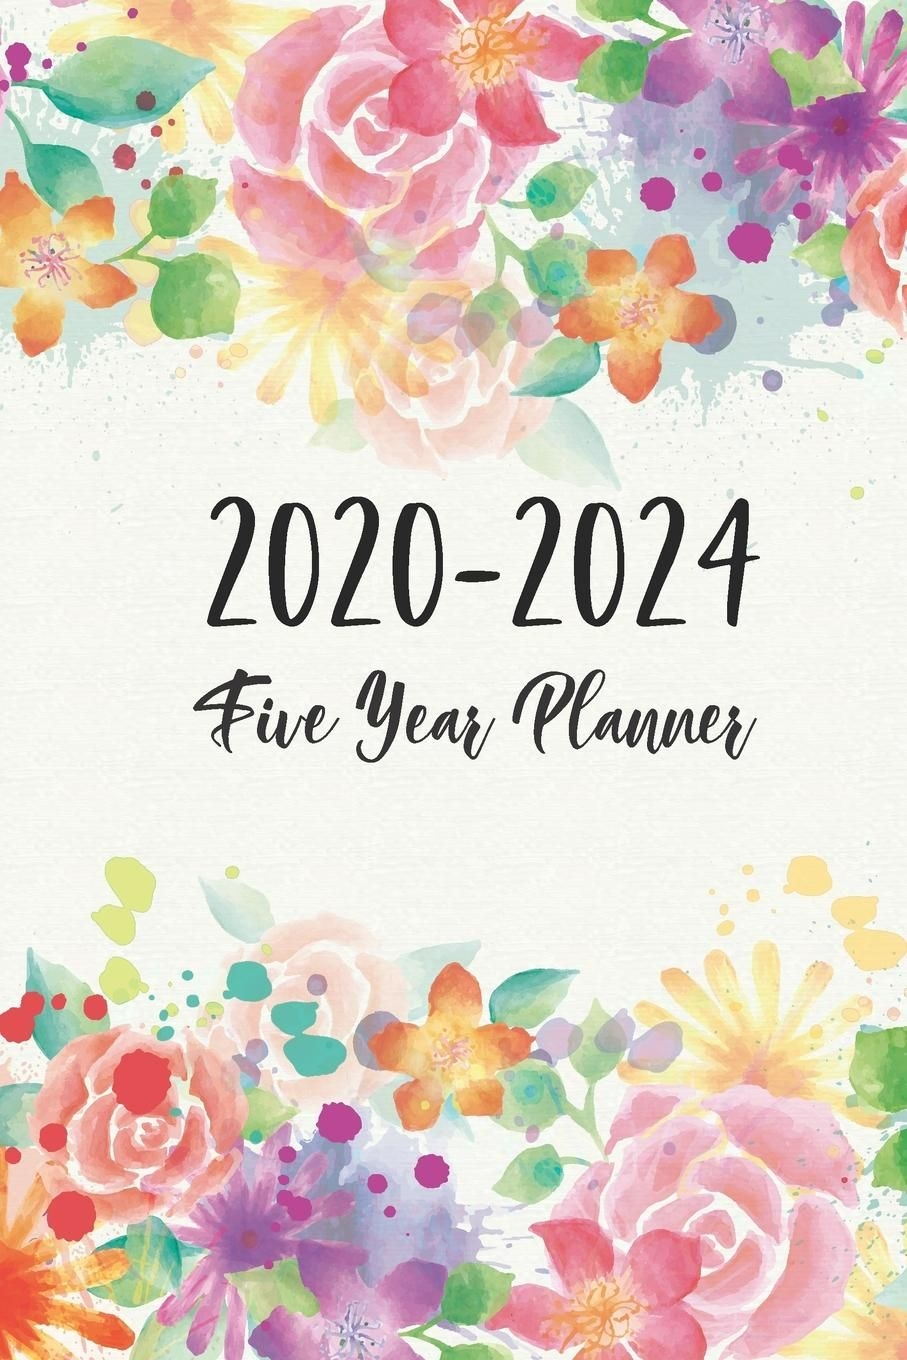 2020 2024 5 year monthly calendar planner: 2020 2024 five year planner: flower cover 2020 2024 monthly schedule organizer 60 month yearly